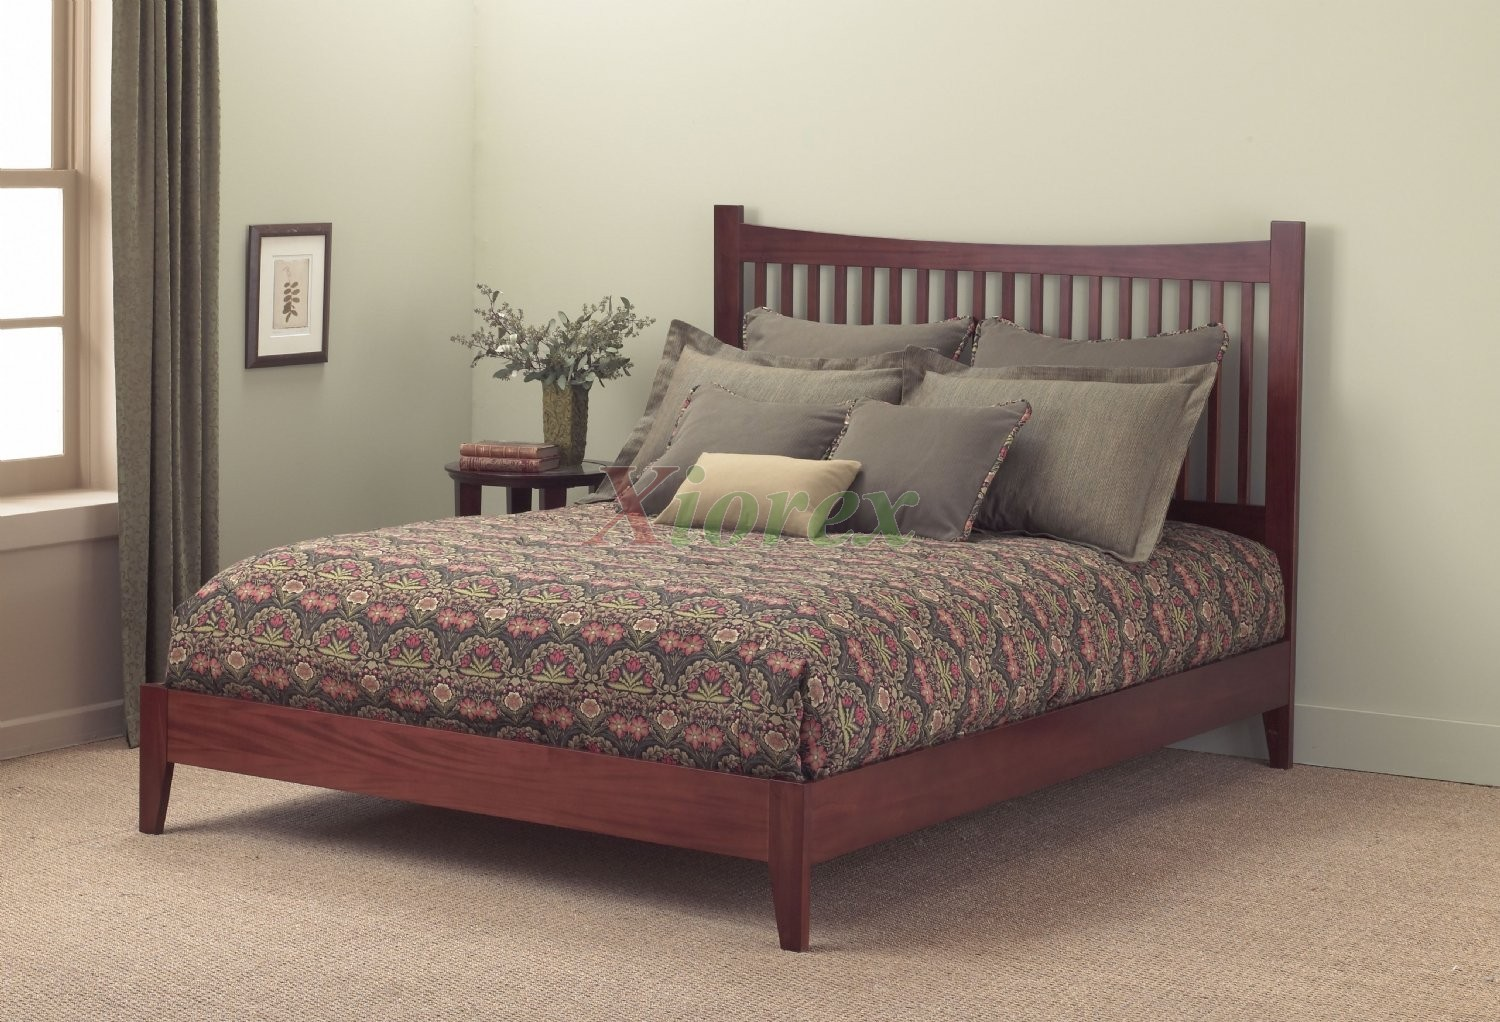 Jakarta bed contemporary bed in mahogany black for Contemporary beds